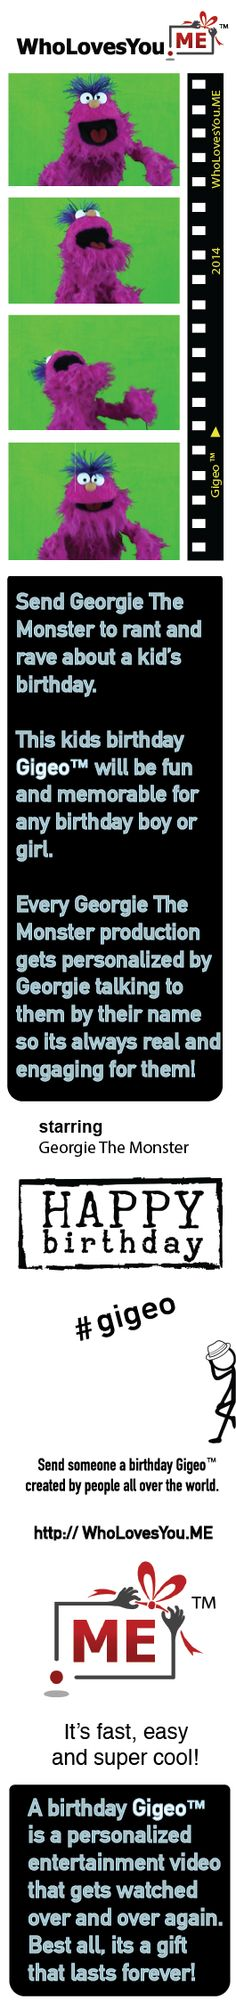 Kids love birthday messages from Georgie the Monster in this endearing Gigeo™. His loveable performance sets things up for a fun-filled special day!